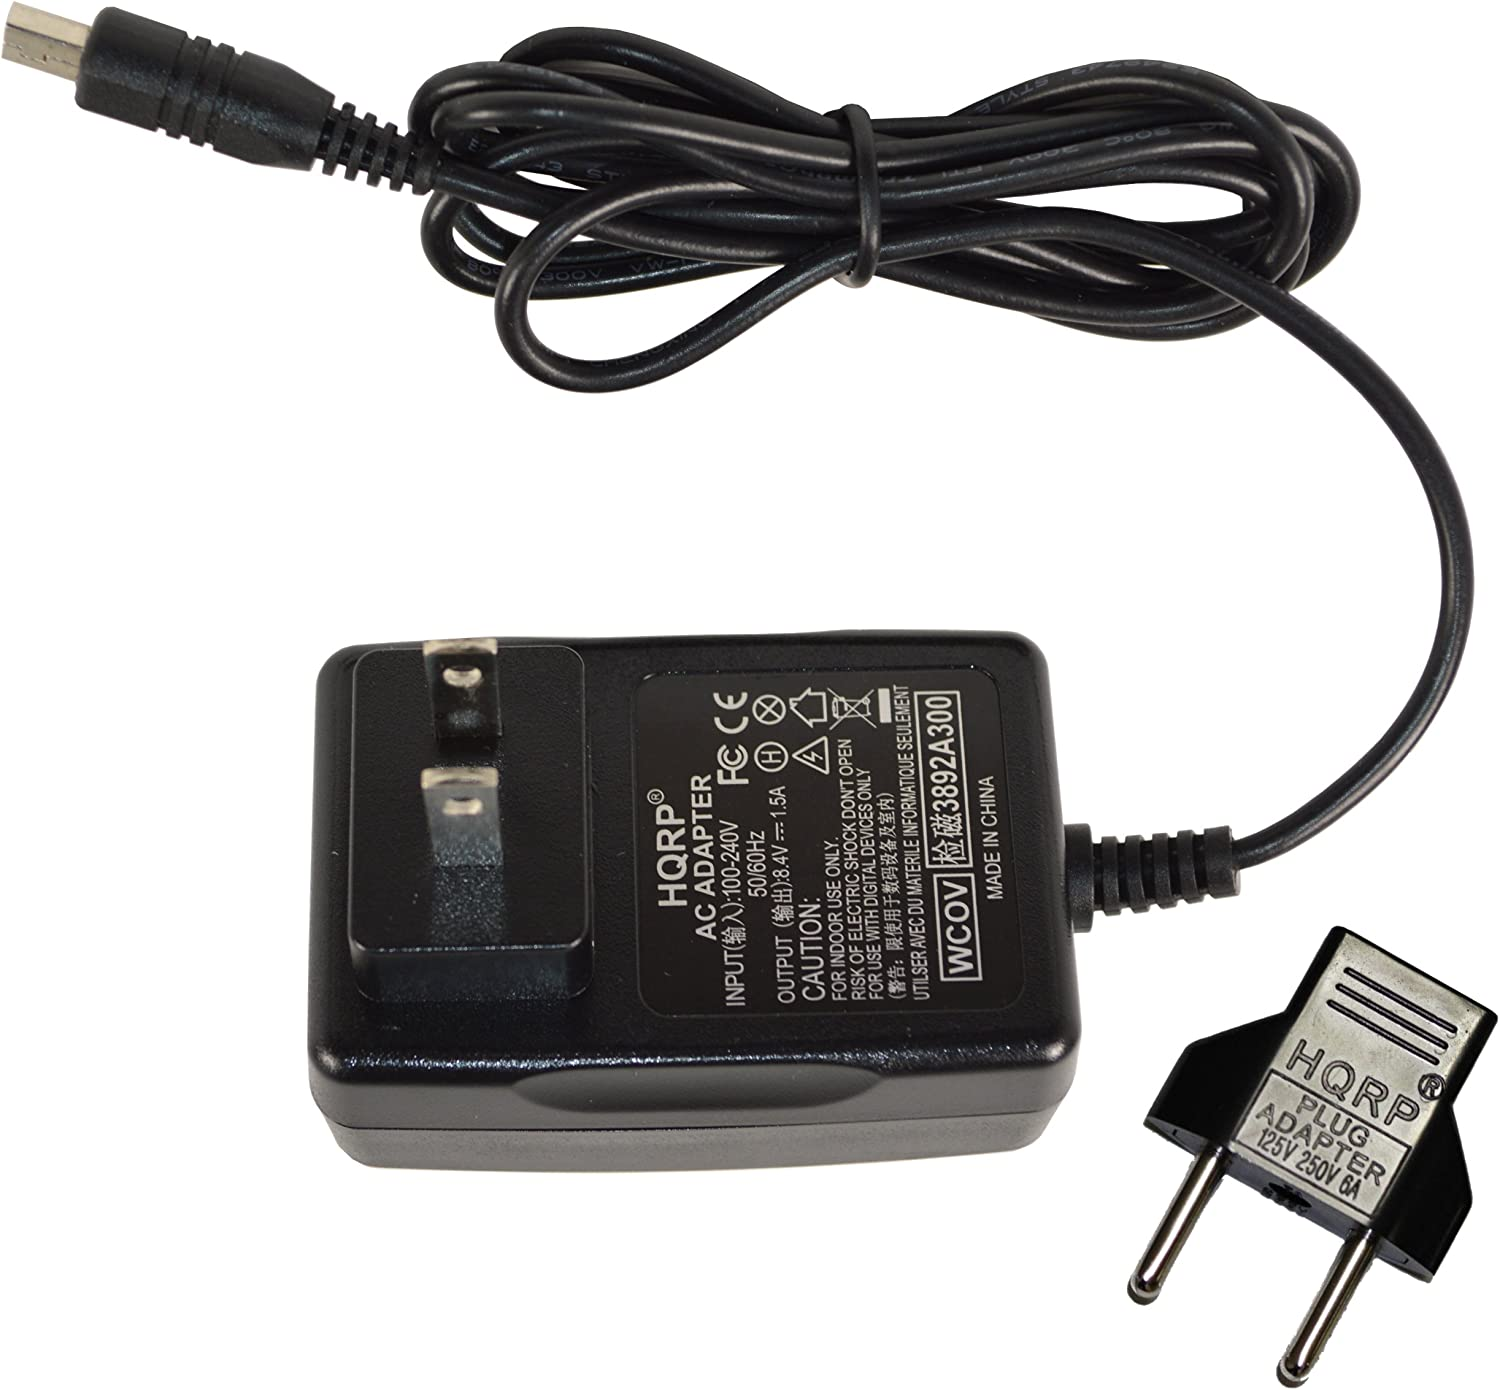 Battery Charger for Samsung SC-D371 SC-D375 SC-D375H Digital Camcorder SC-D372